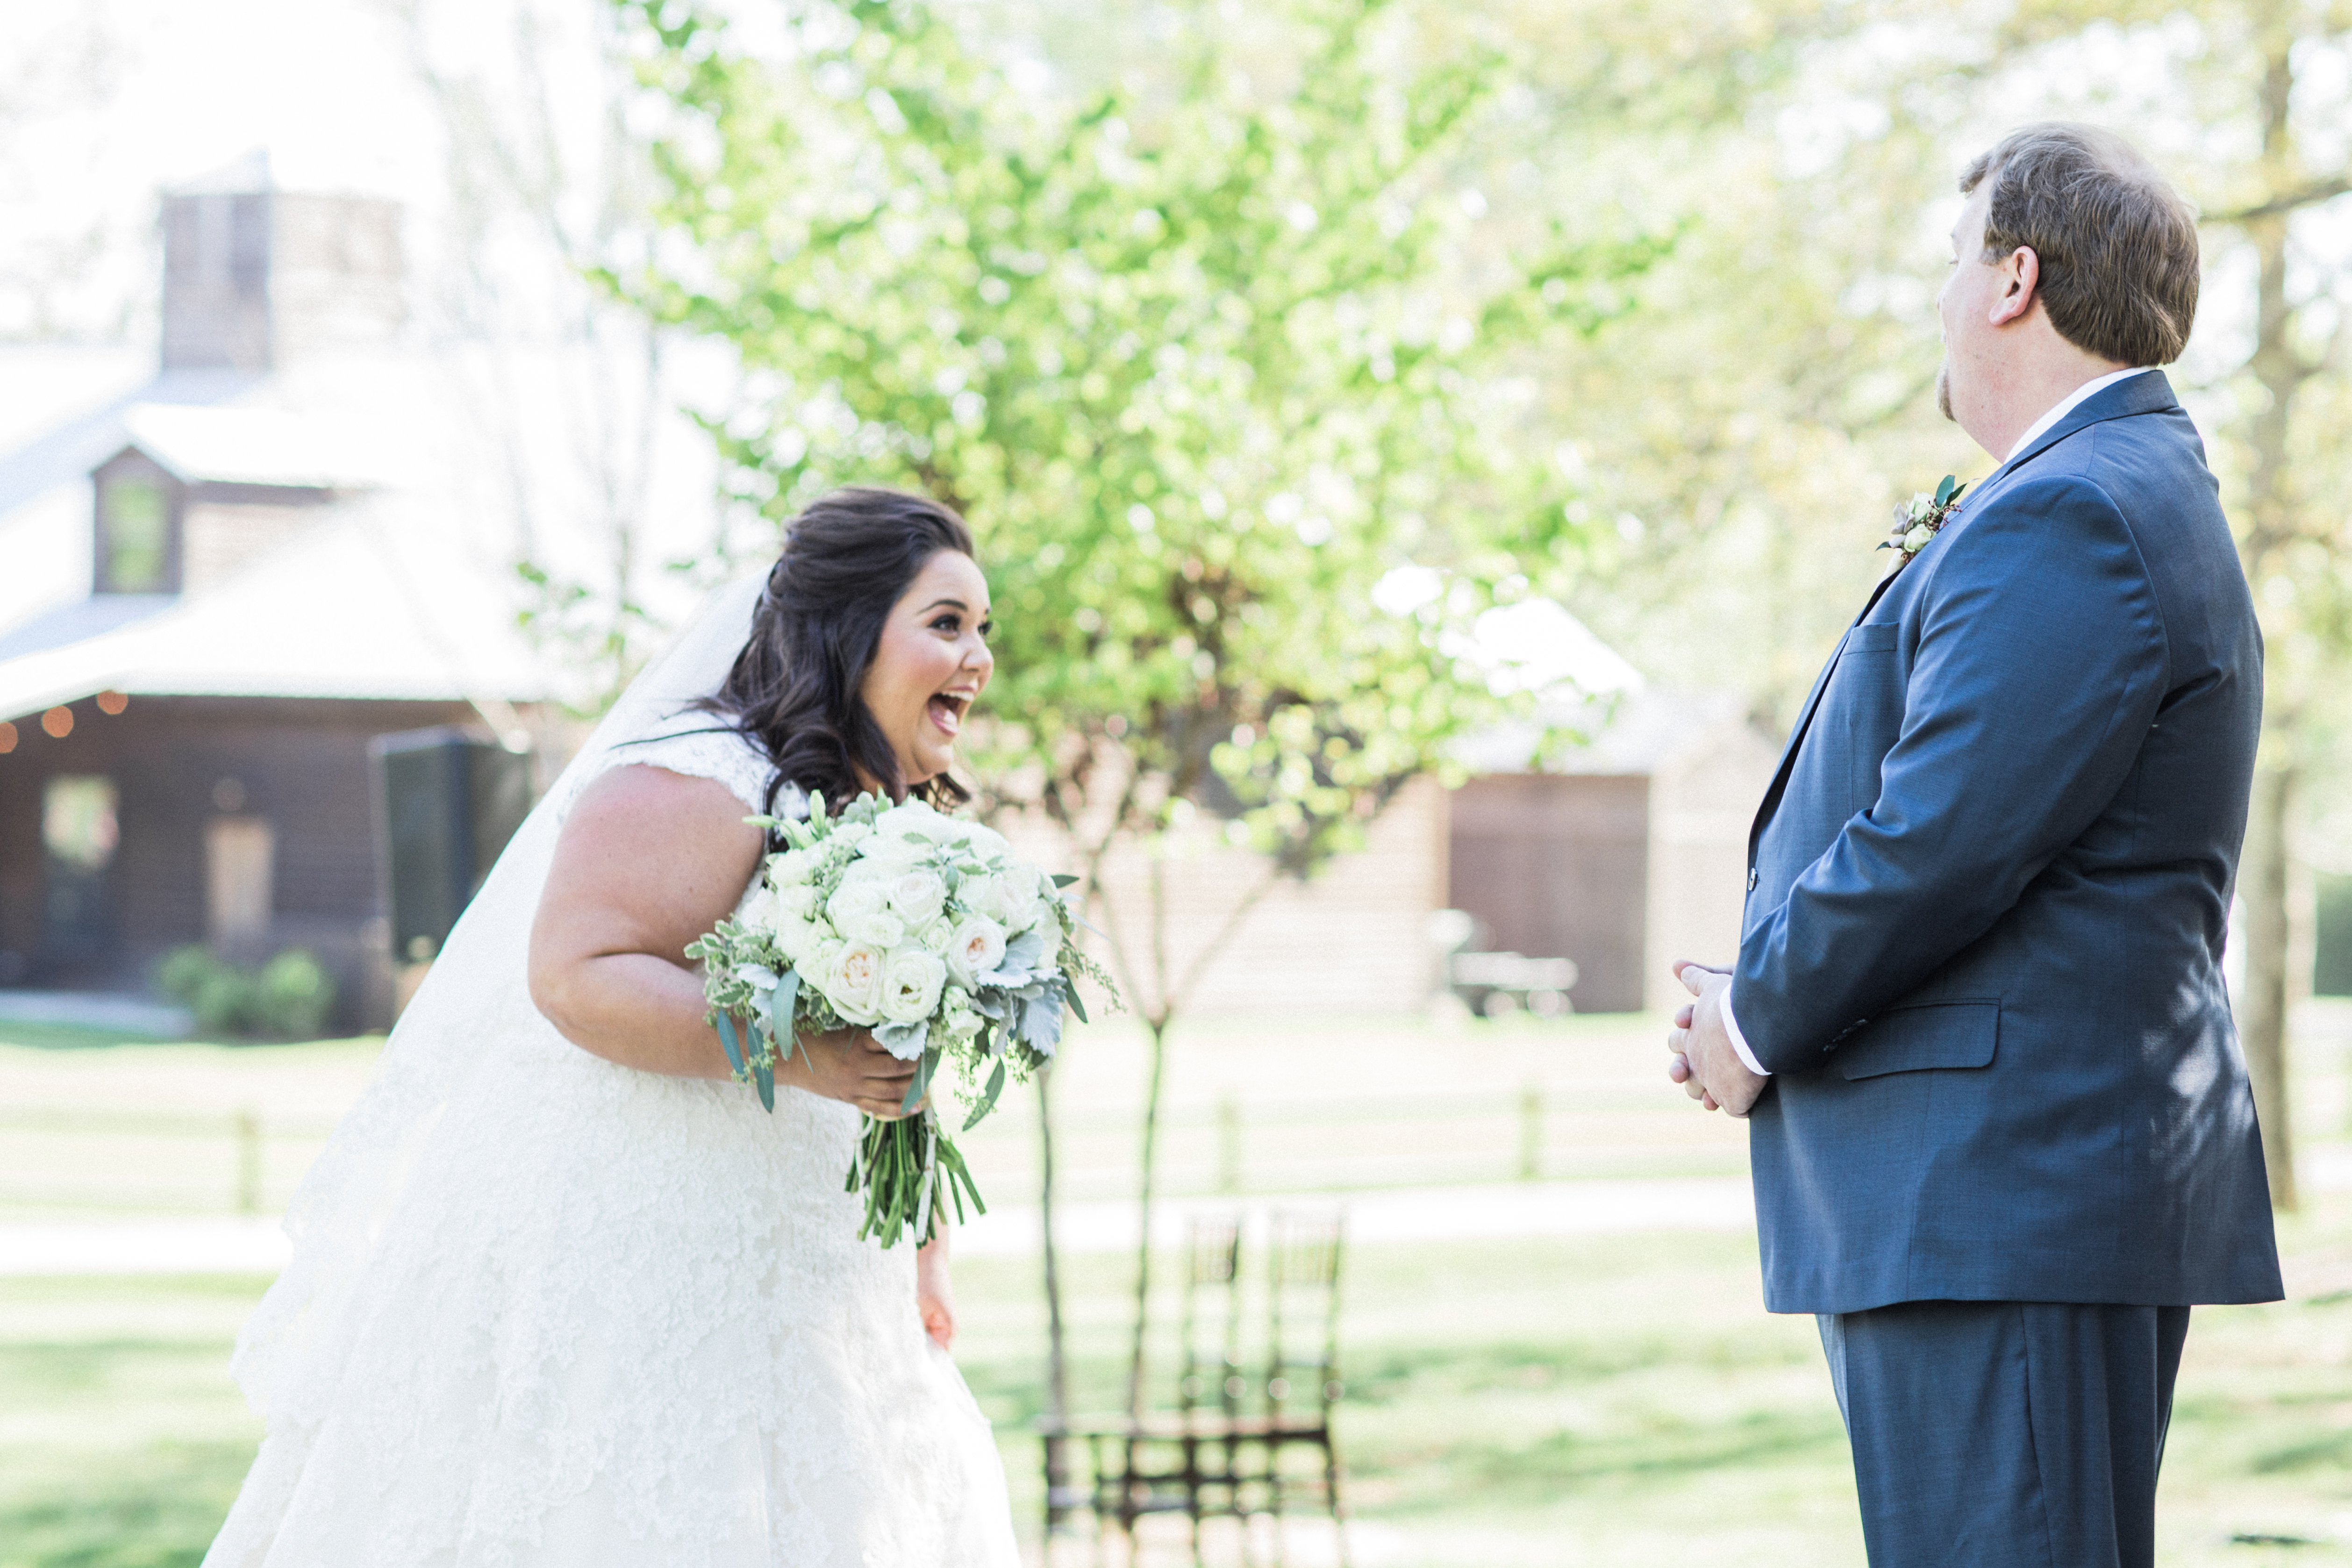 CAHOON_WEDDING_BIRMINGHAM_ALABAMA_WEDDING_PHOTOGRAPHY_46